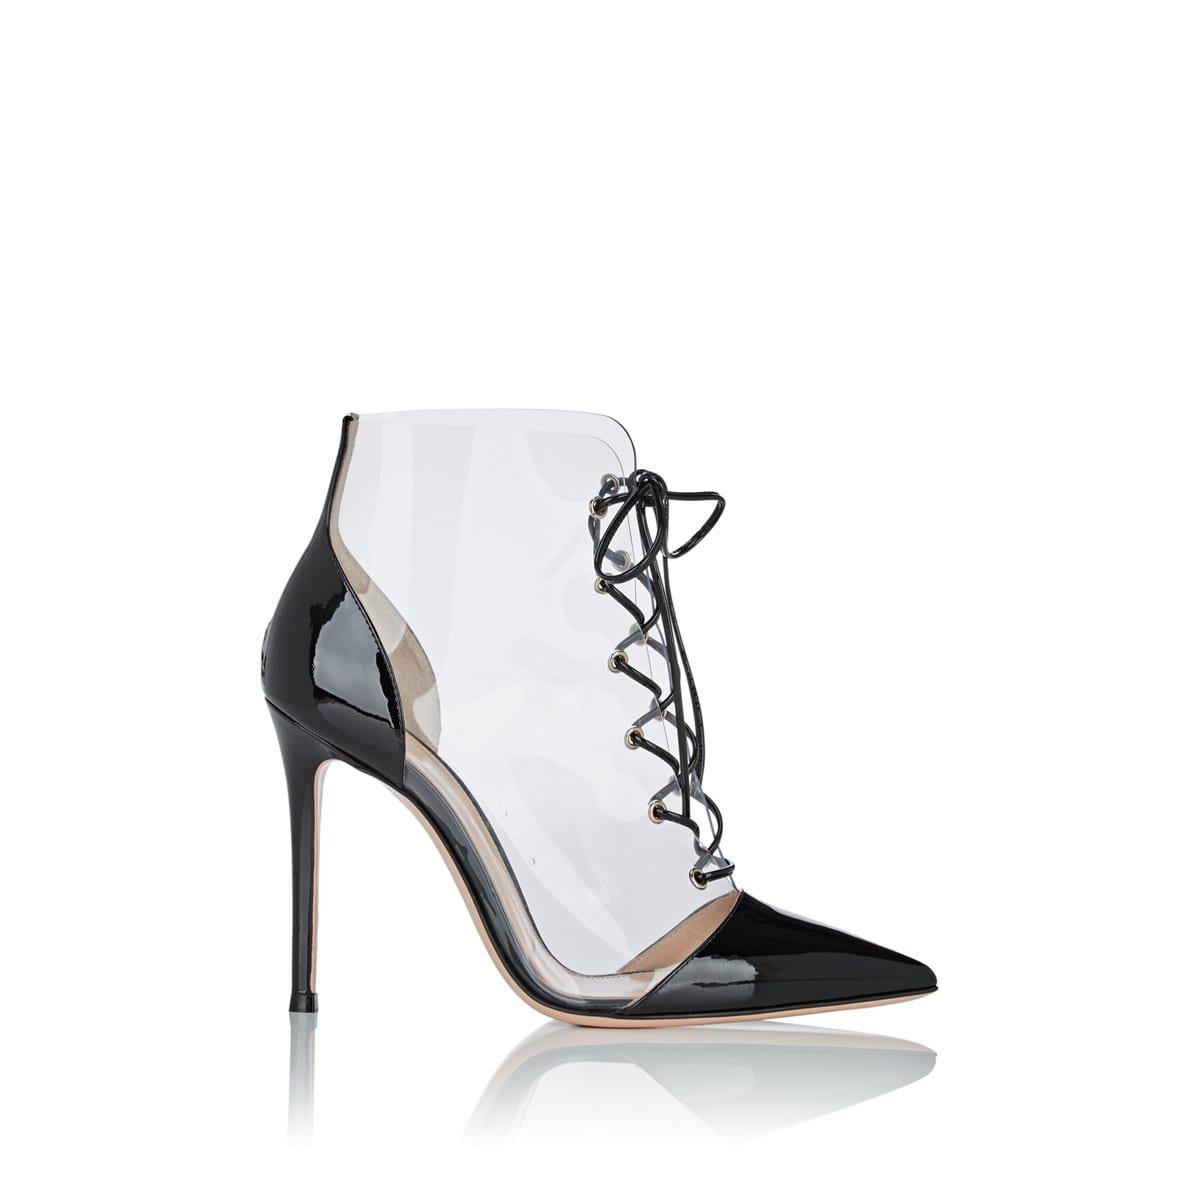 96b81a13ed7 Gianvito Rossi Pvc   Patent Leather Lace in Black - Lyst